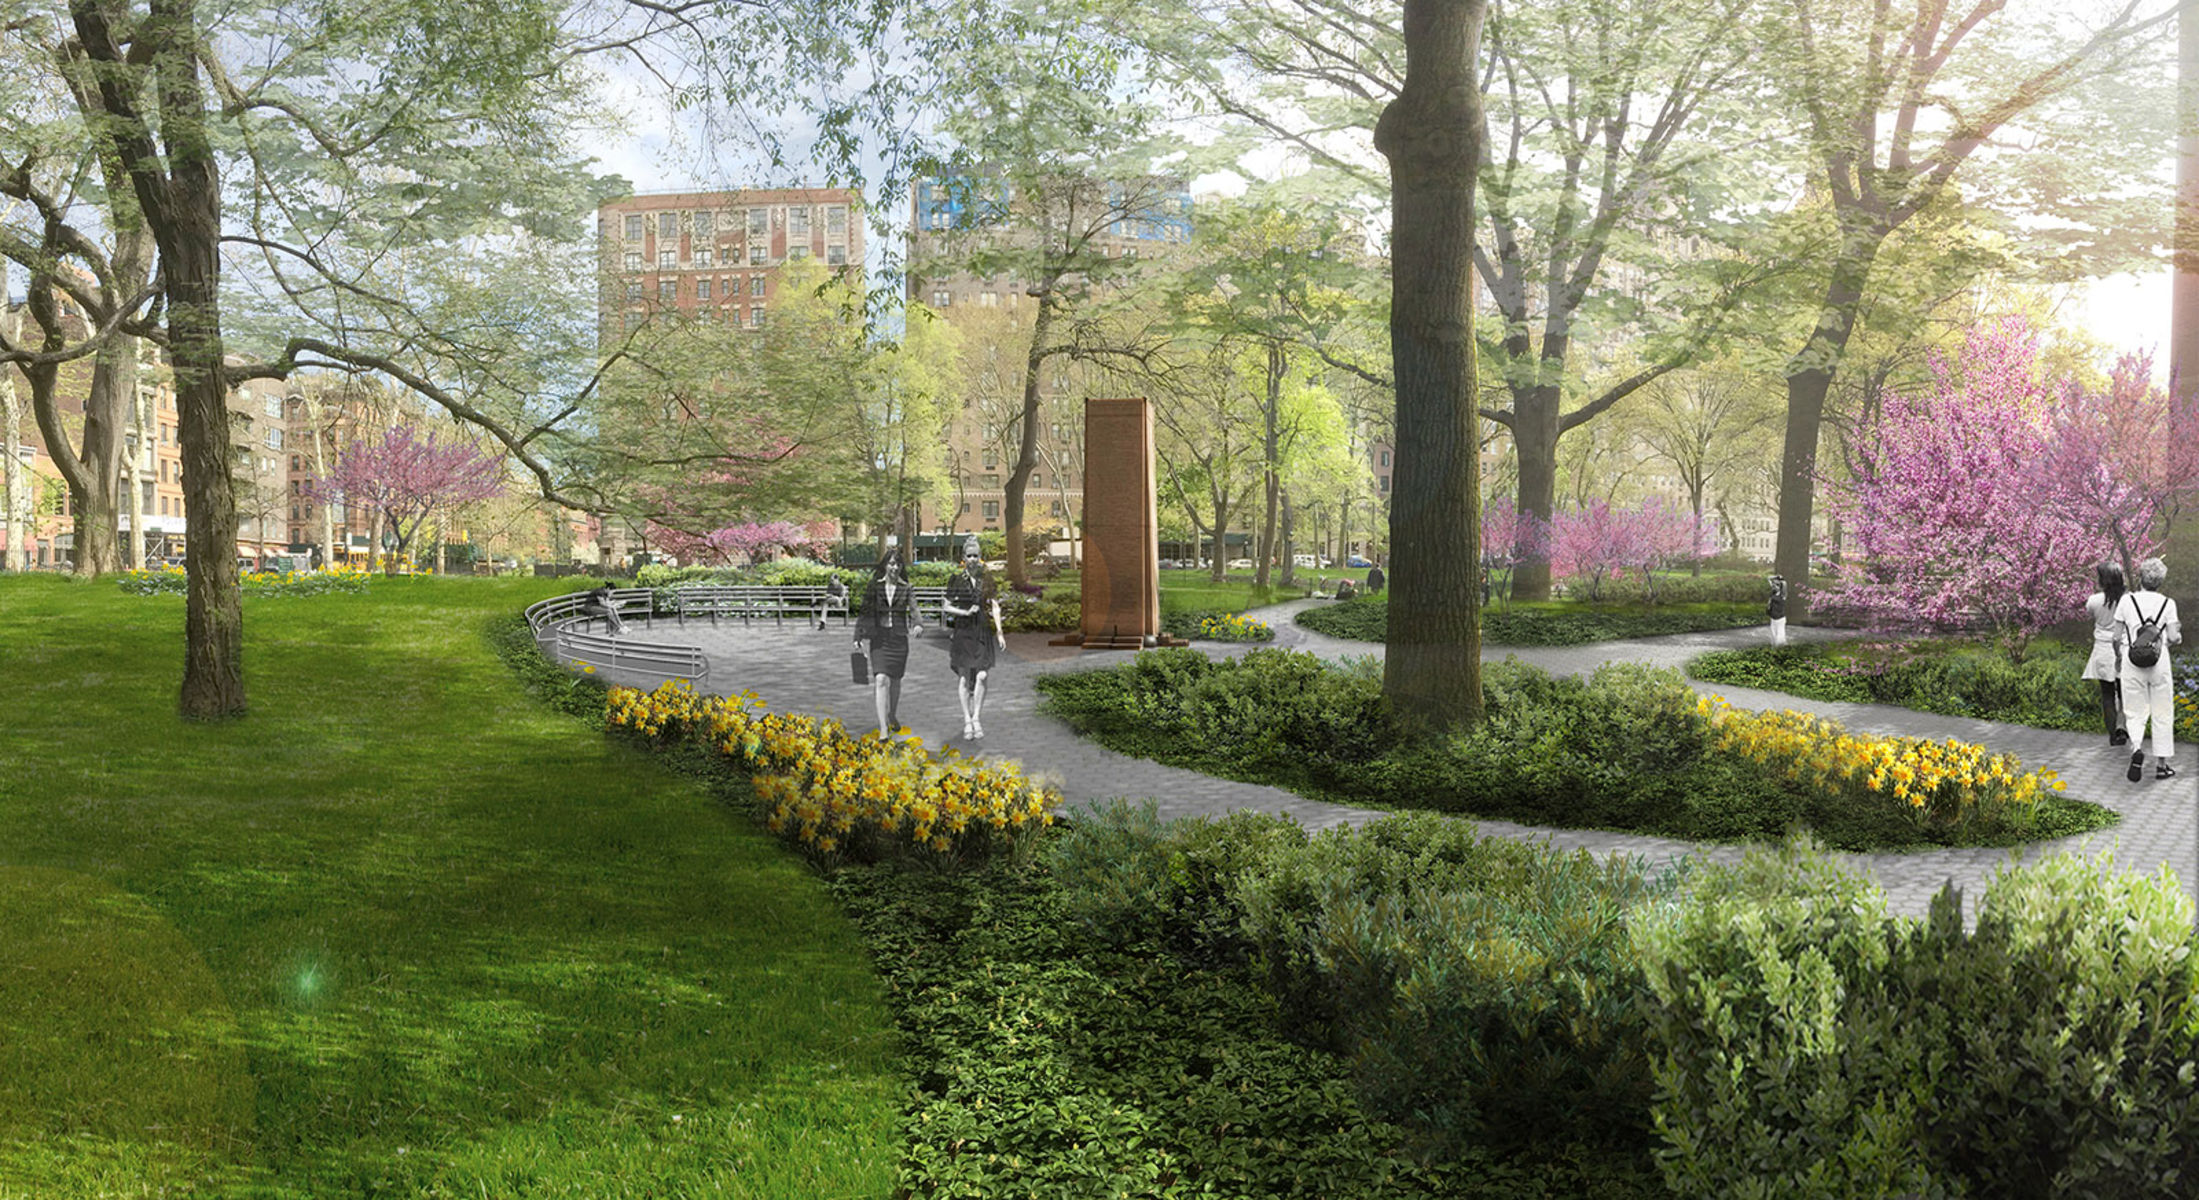 Architectural rendering of the park area surrounding the Museum with a walkway, flowering trees and plants and a monument in the backgroundM